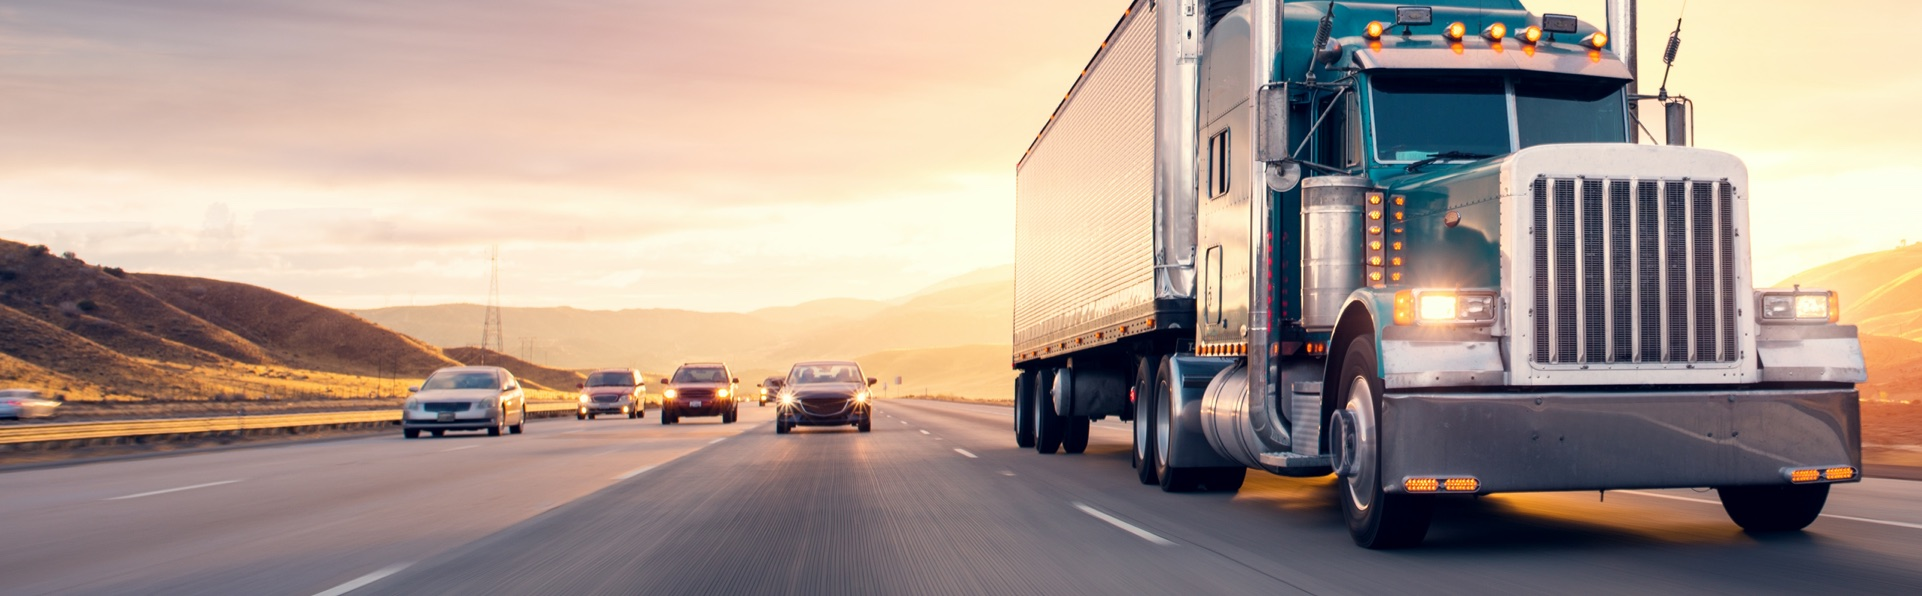 Strong Pre-Pandemic Demand and Continued, Solid U.S. Economic Fundamentals Reveal Likely Recovery Path for Transportation Industry Fleet Assets